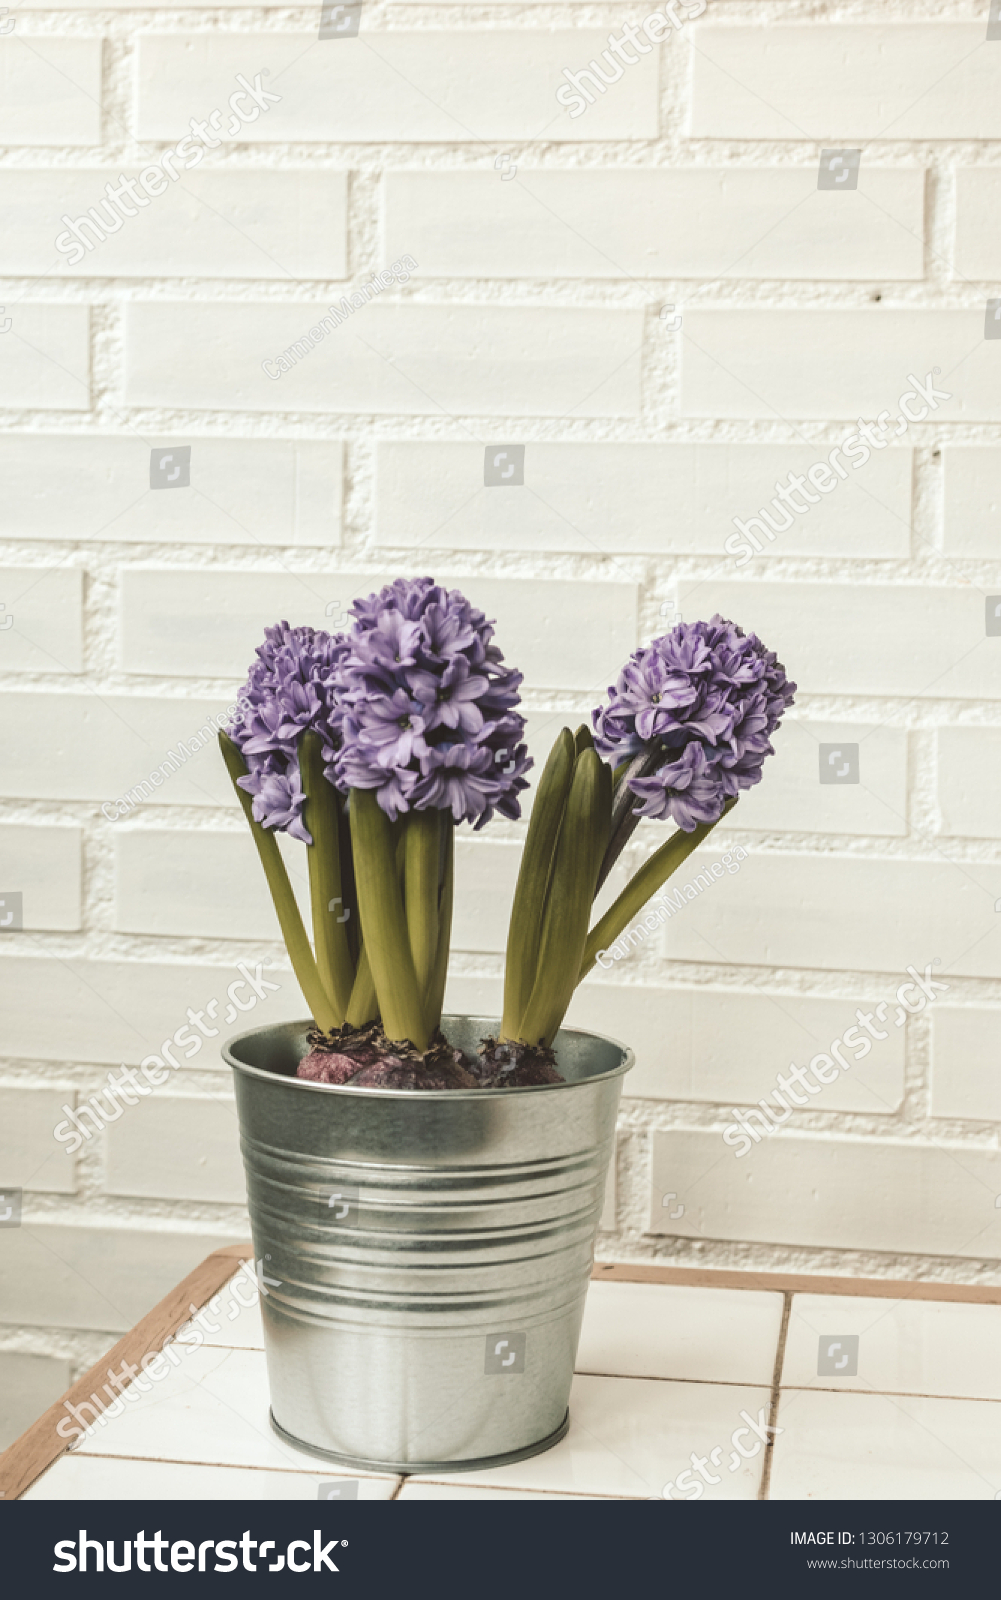 Shutterstock & Jacinth Flowers Indoor Plant Metal Pot Stock Photo (Edit Now ...